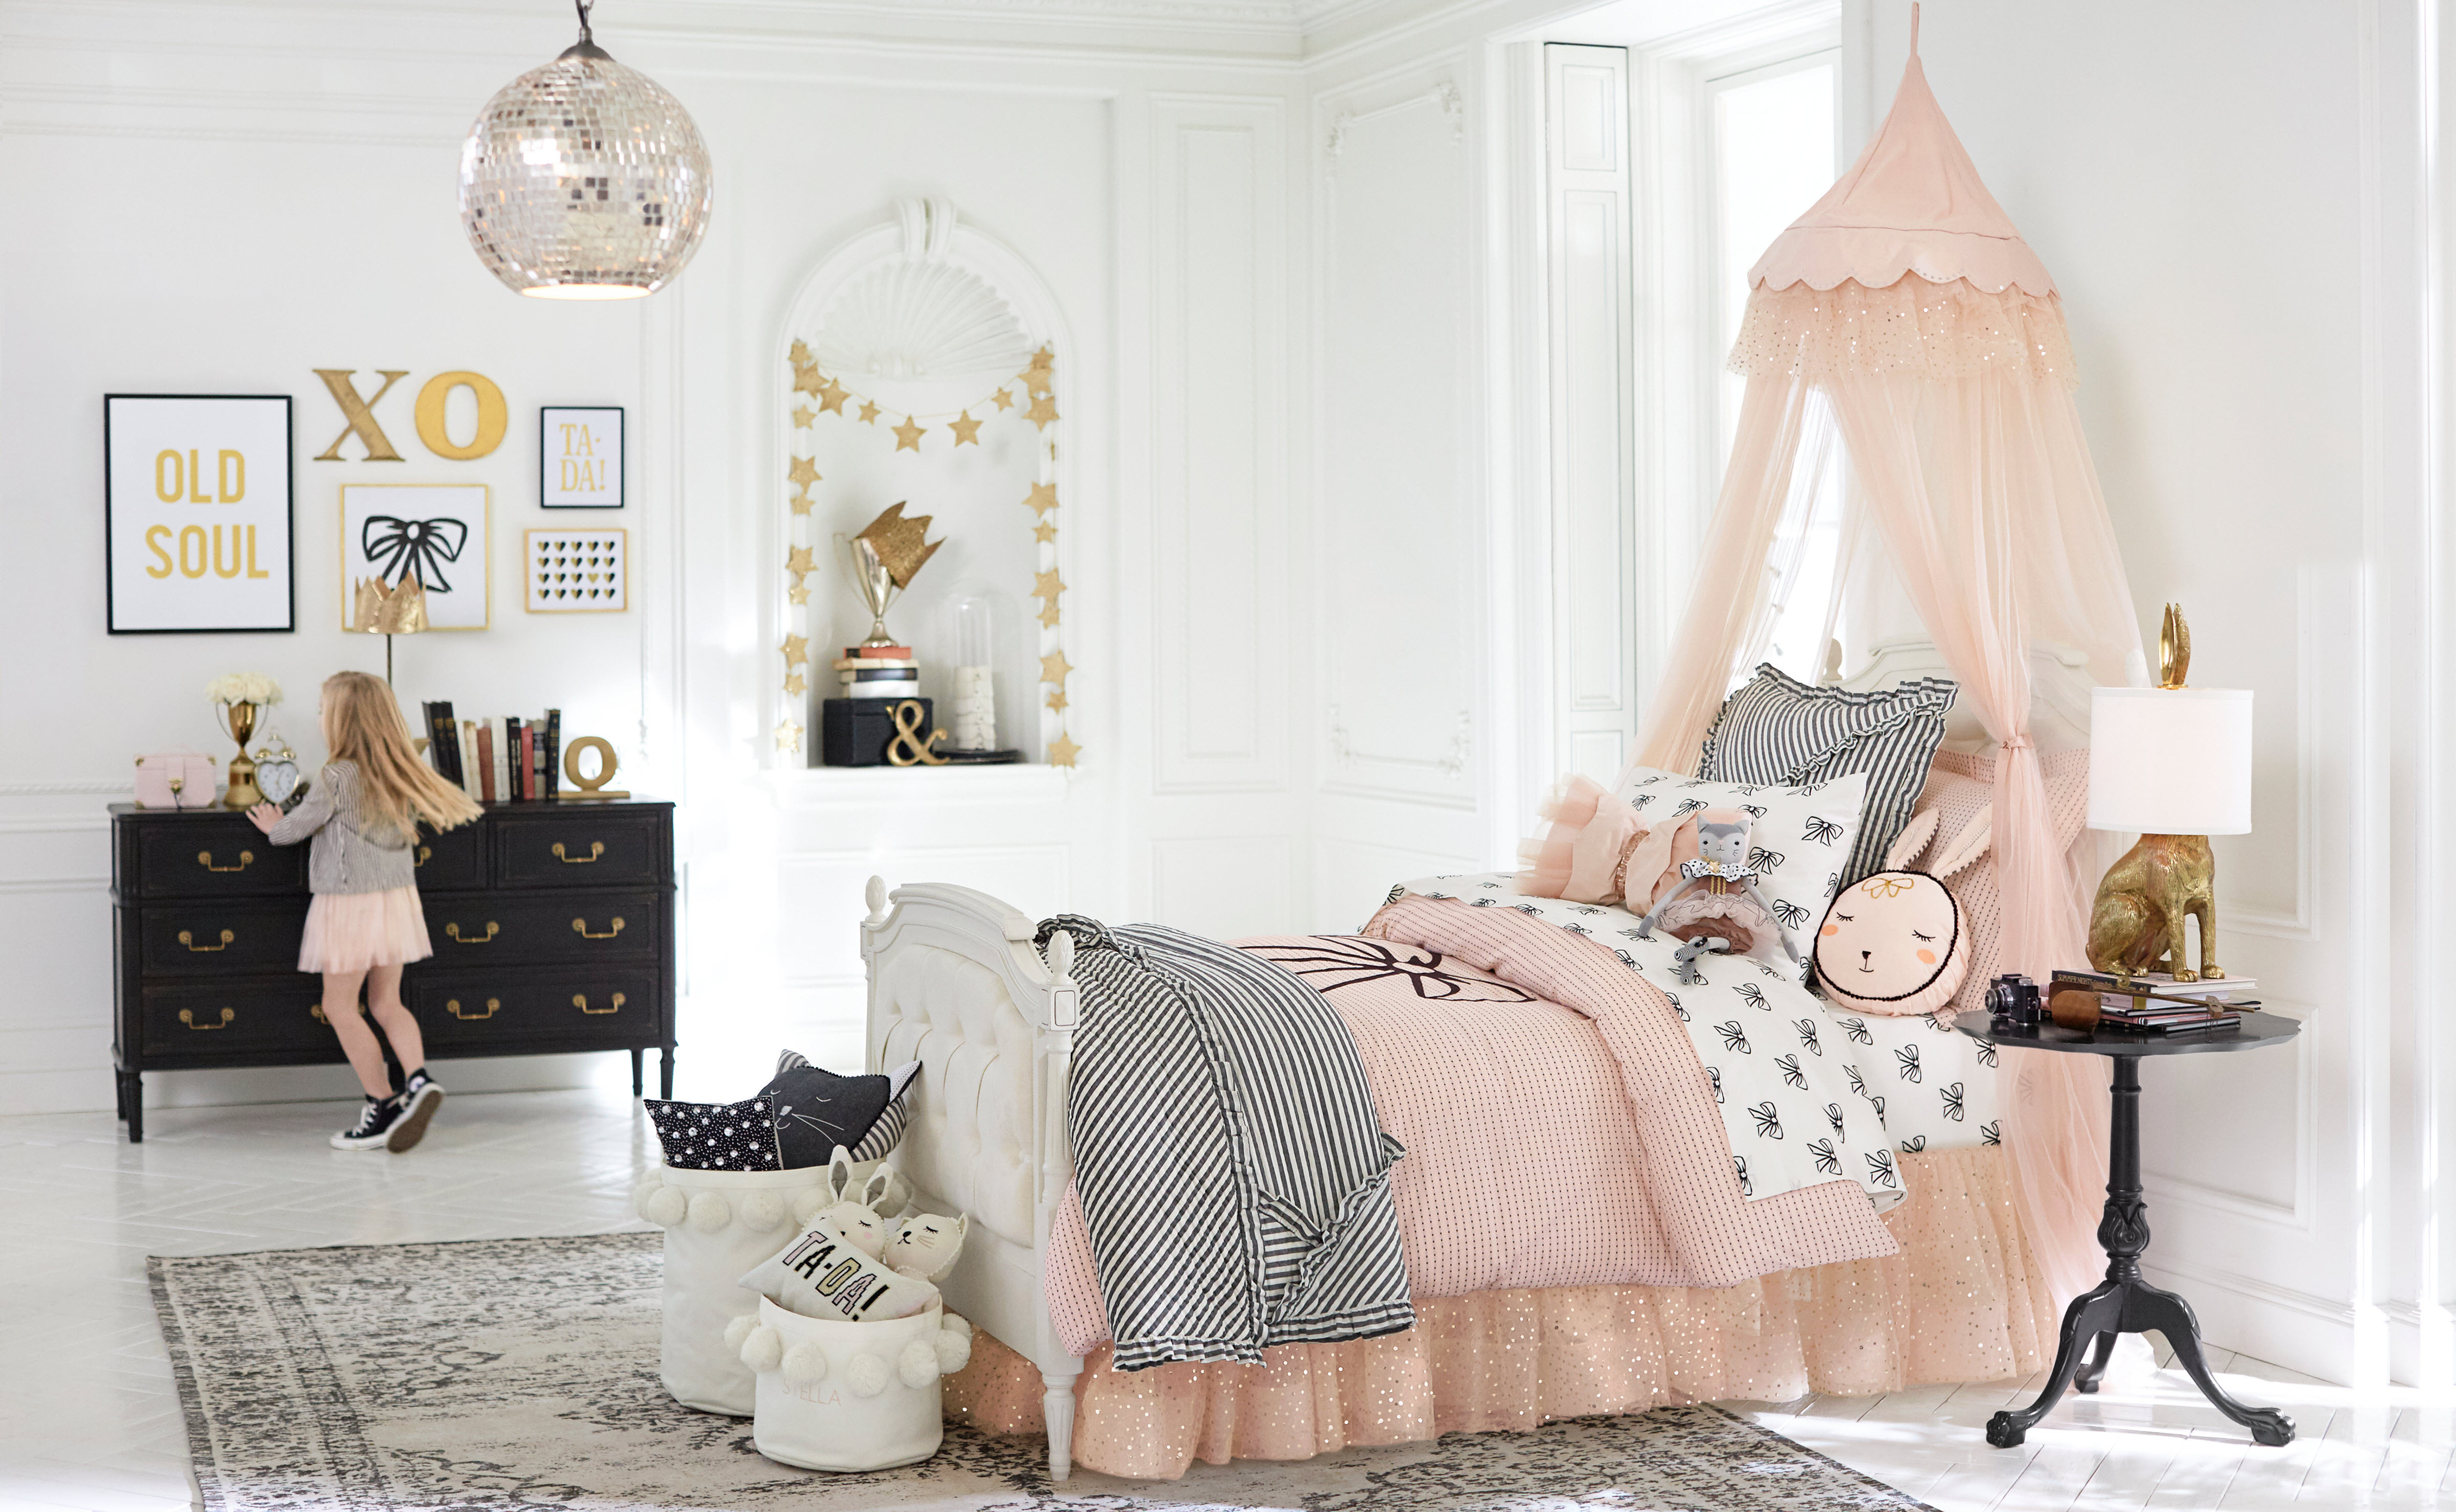 Pottery Barn Kids Bedroom Furniture Pottery Barn Kids Unveils Imaginative New Collection With Fashion